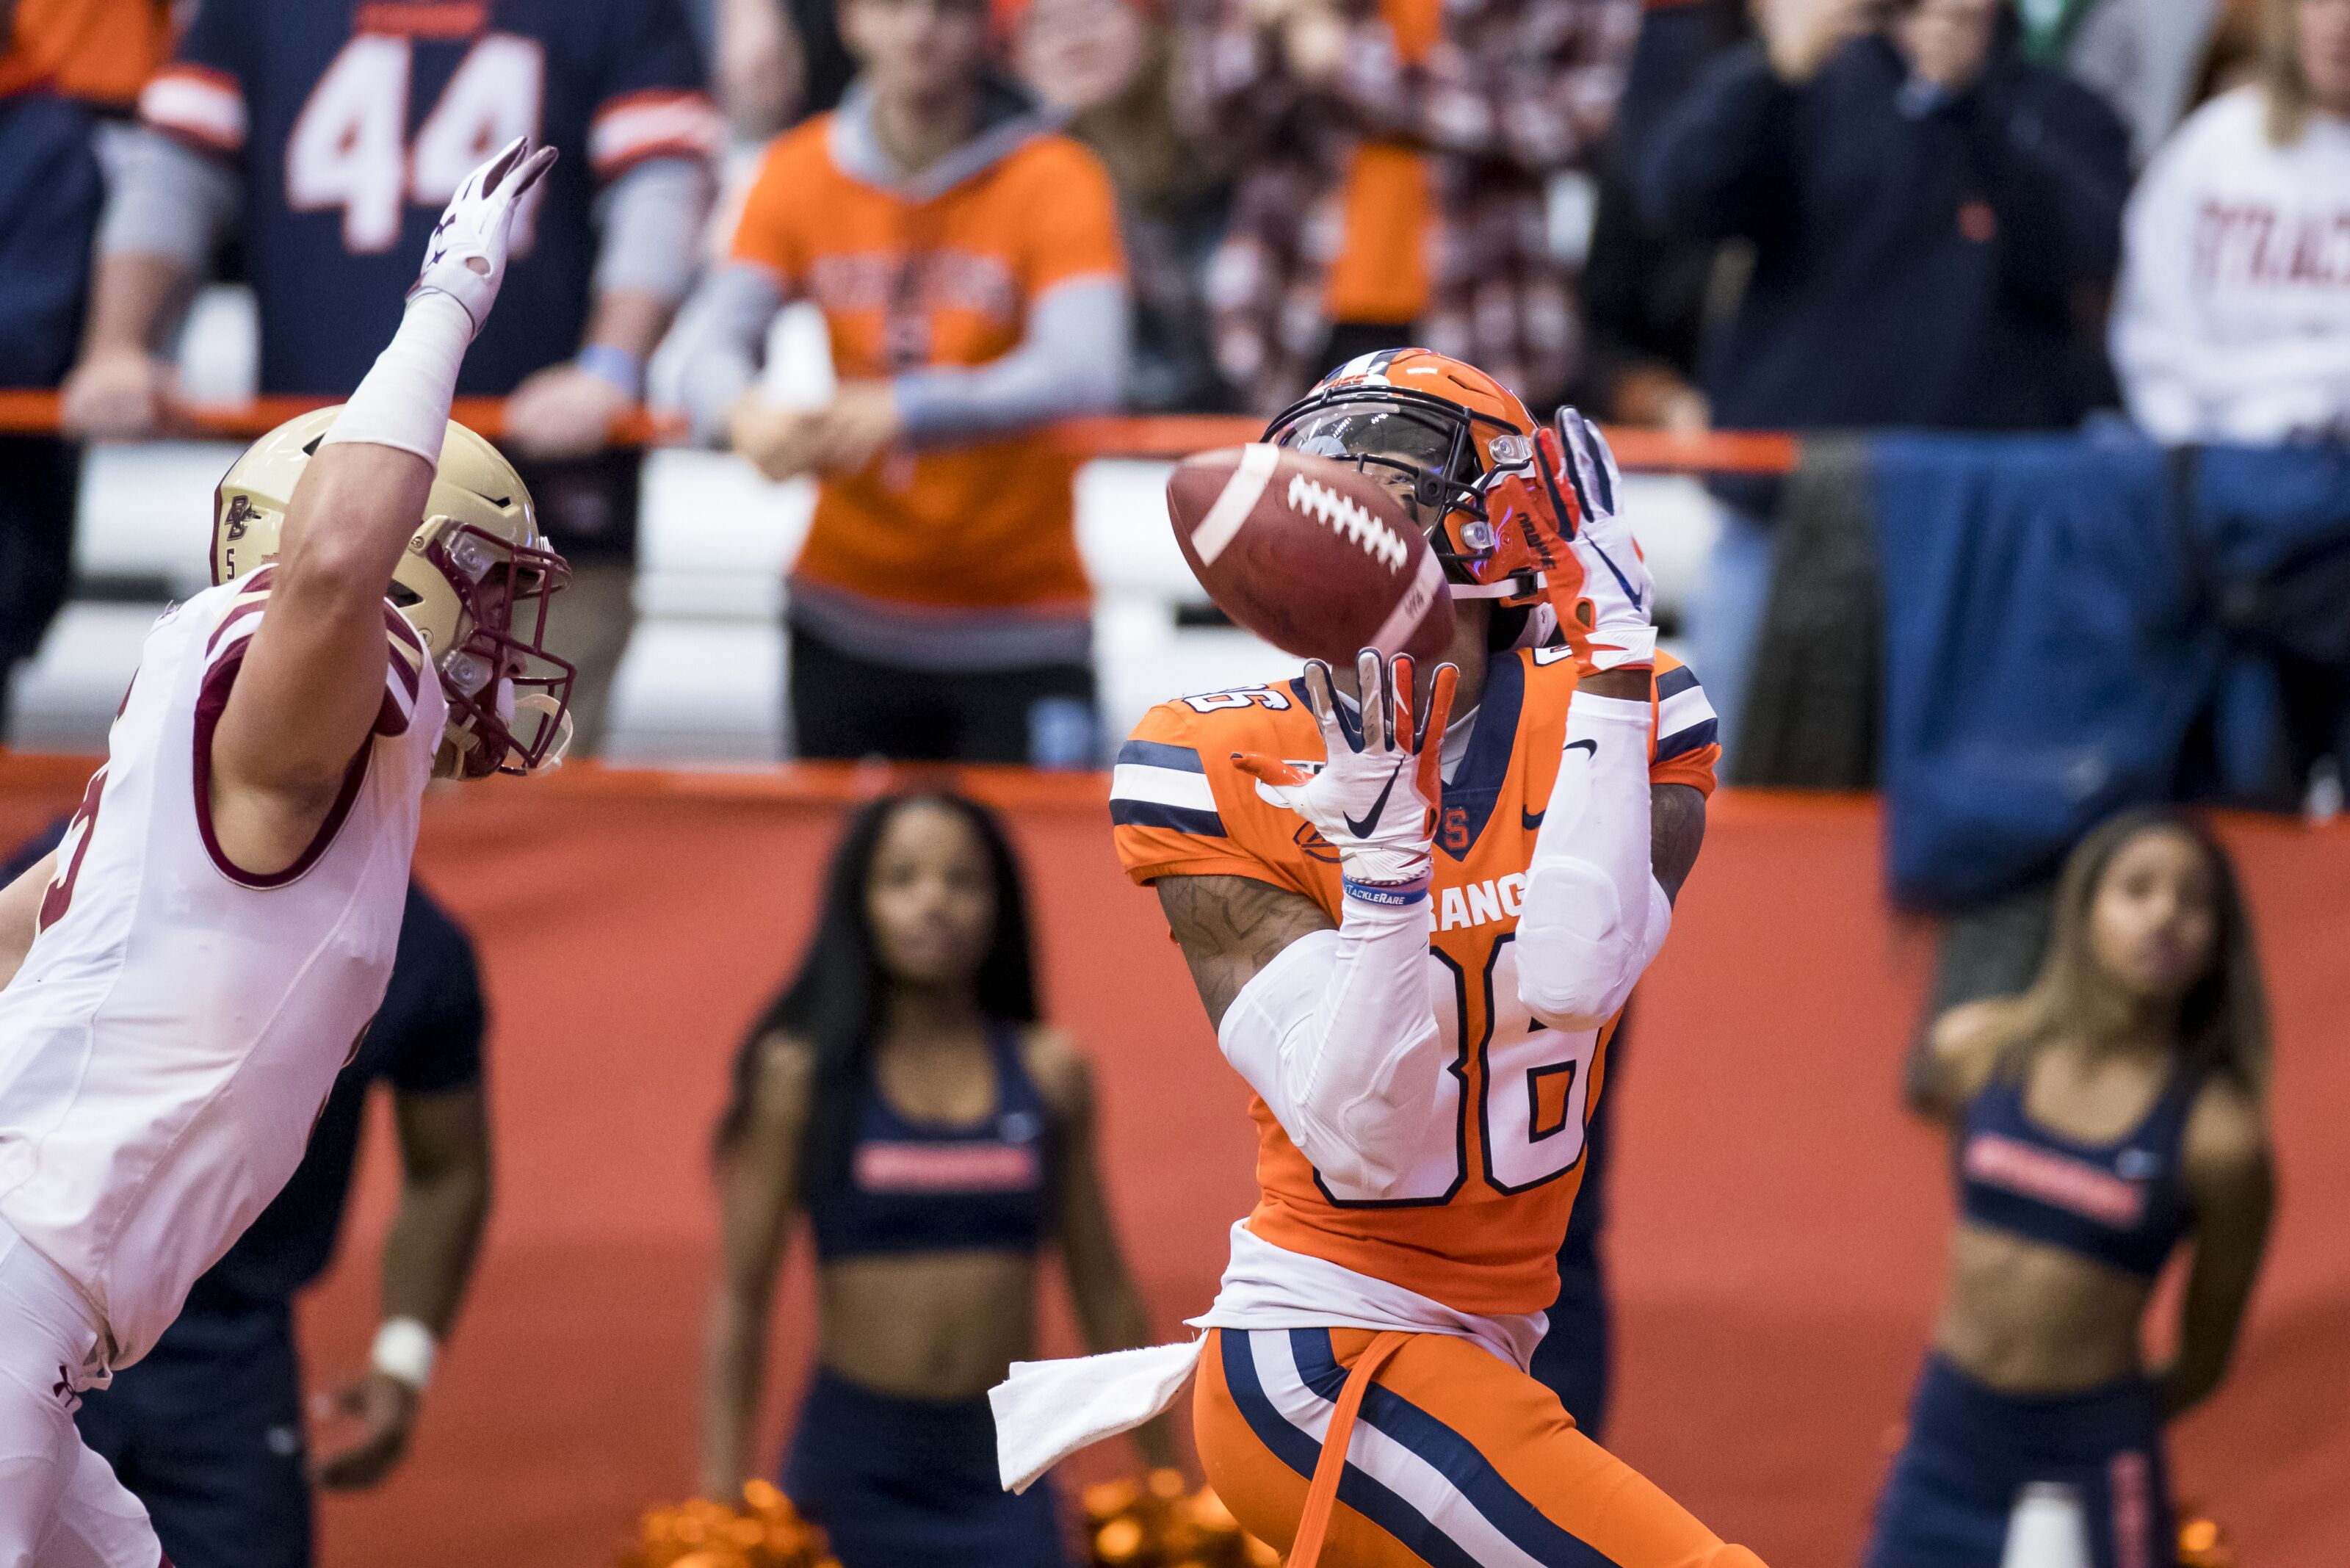 Syracuse Football: Orange have successfully recruited another No. 1 WR